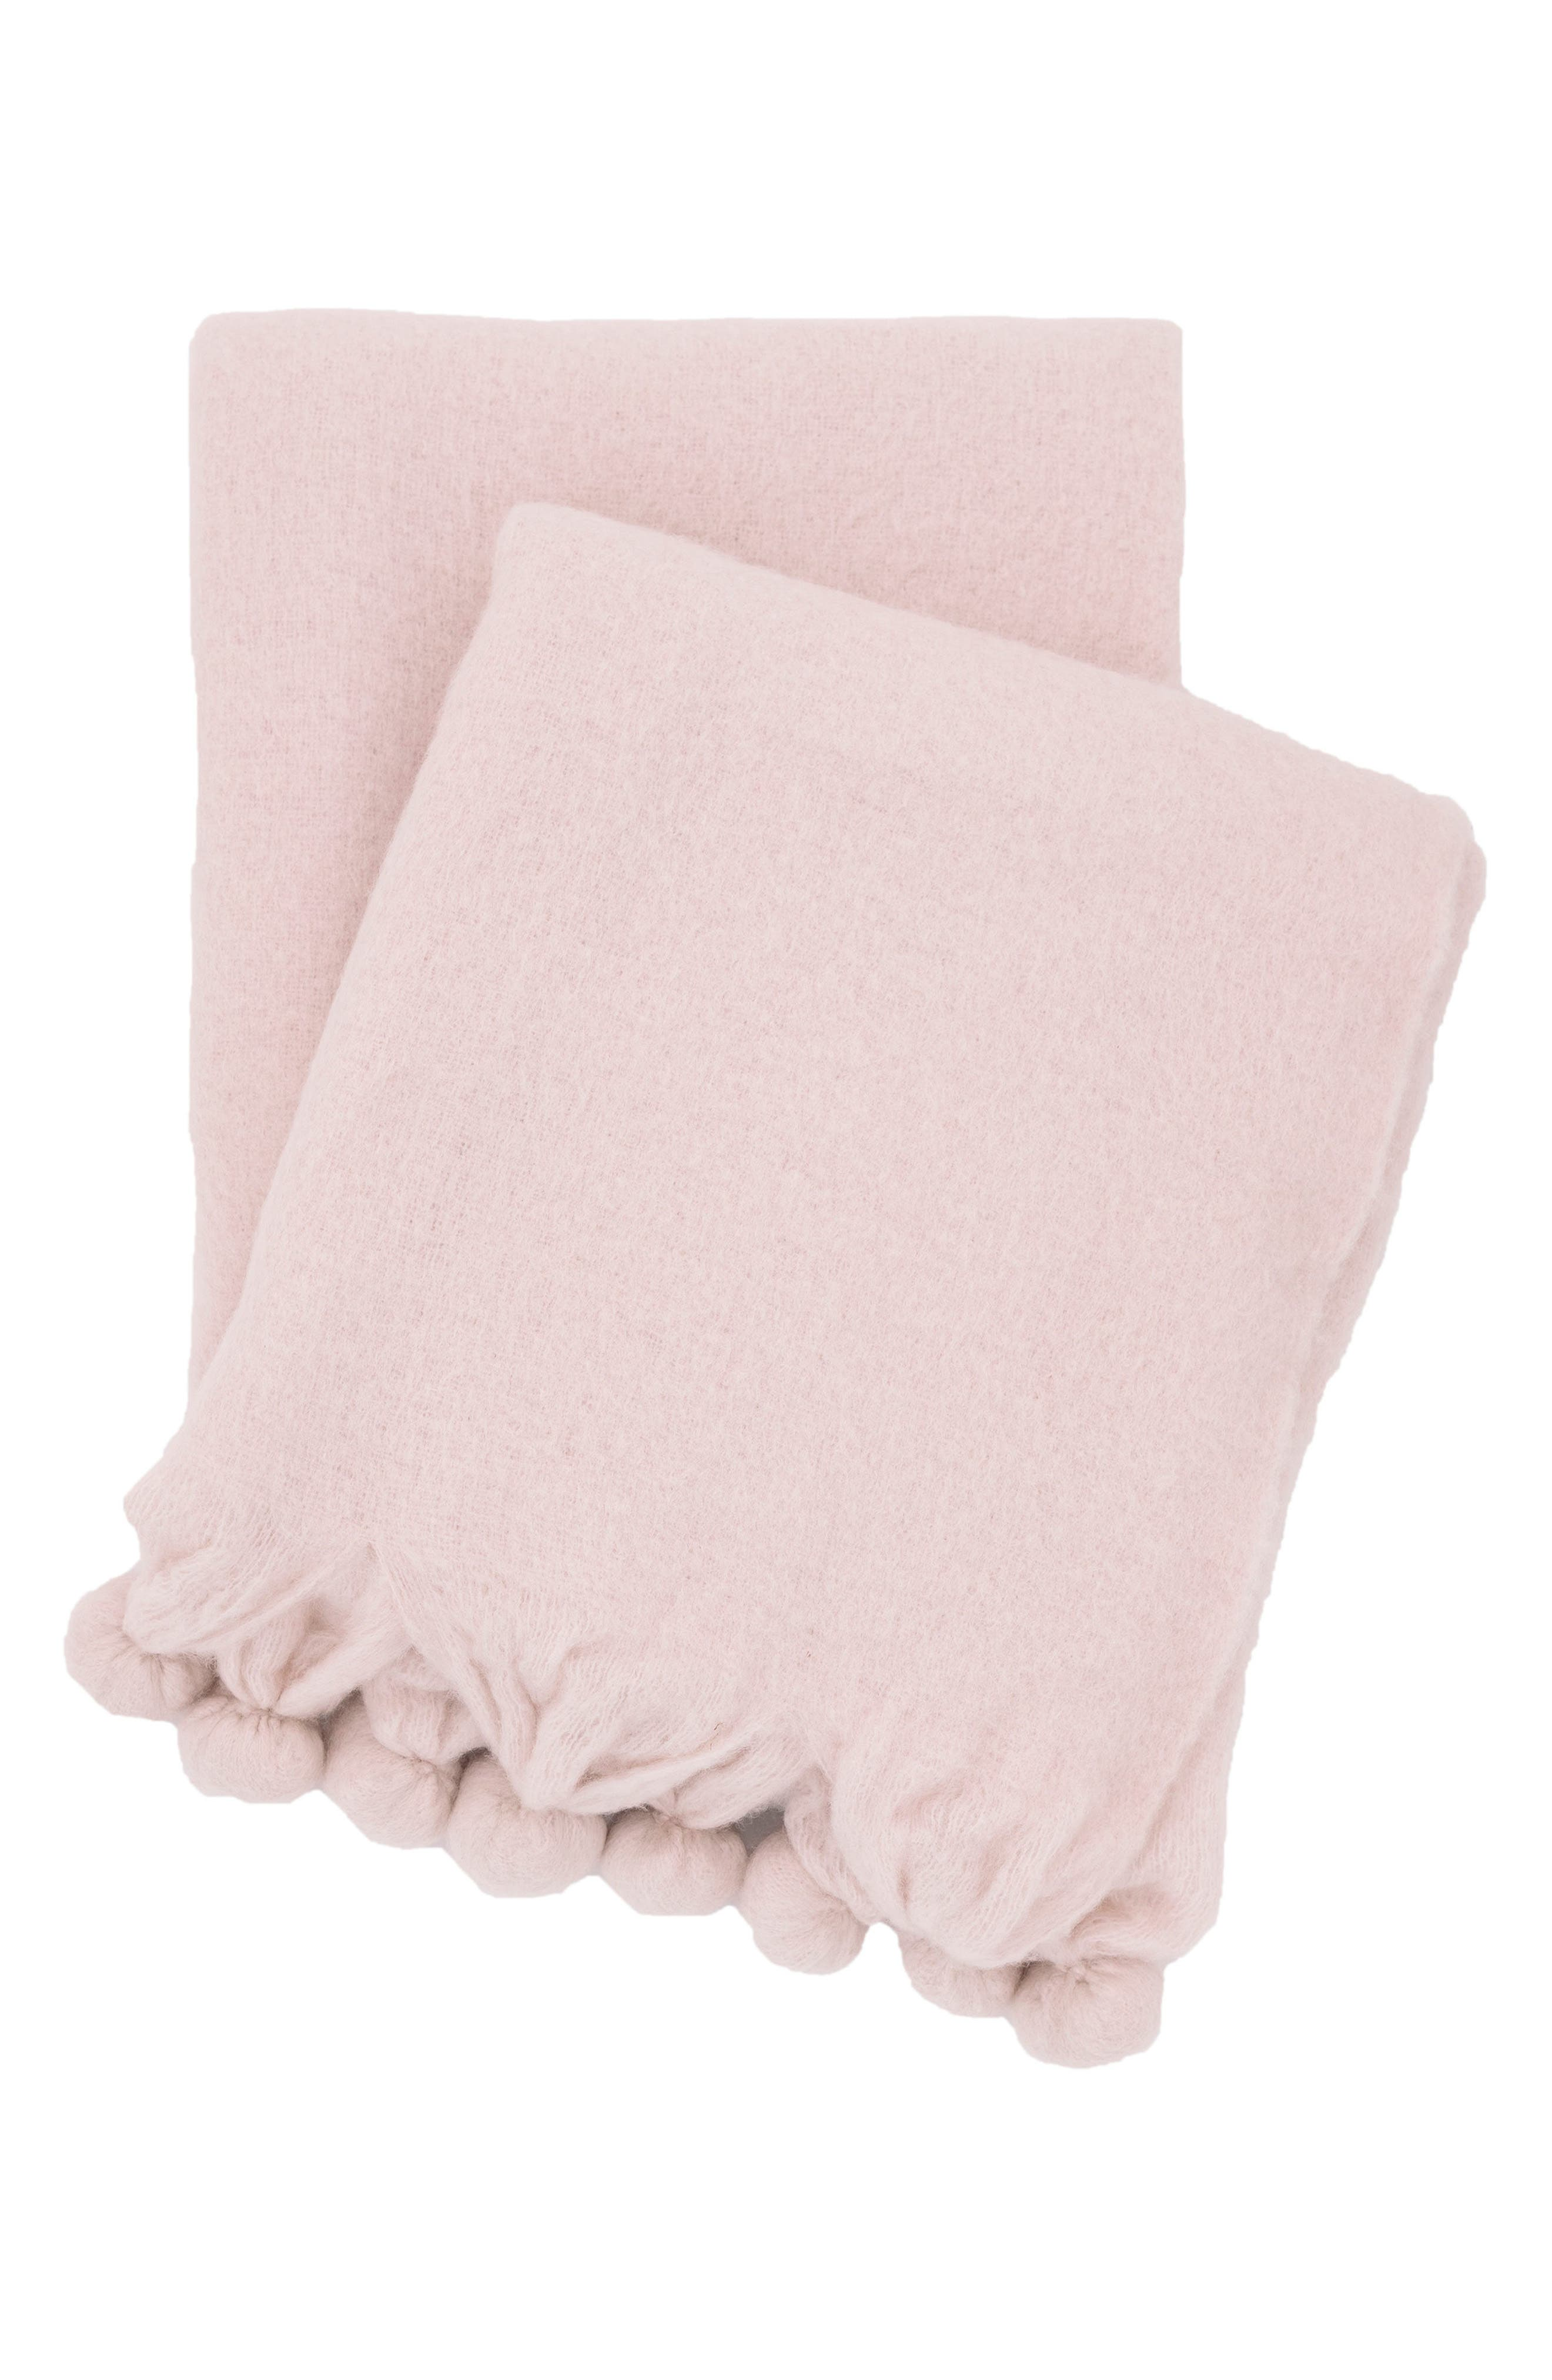 Pompom Throw,                             Main thumbnail 1, color,                             Pink